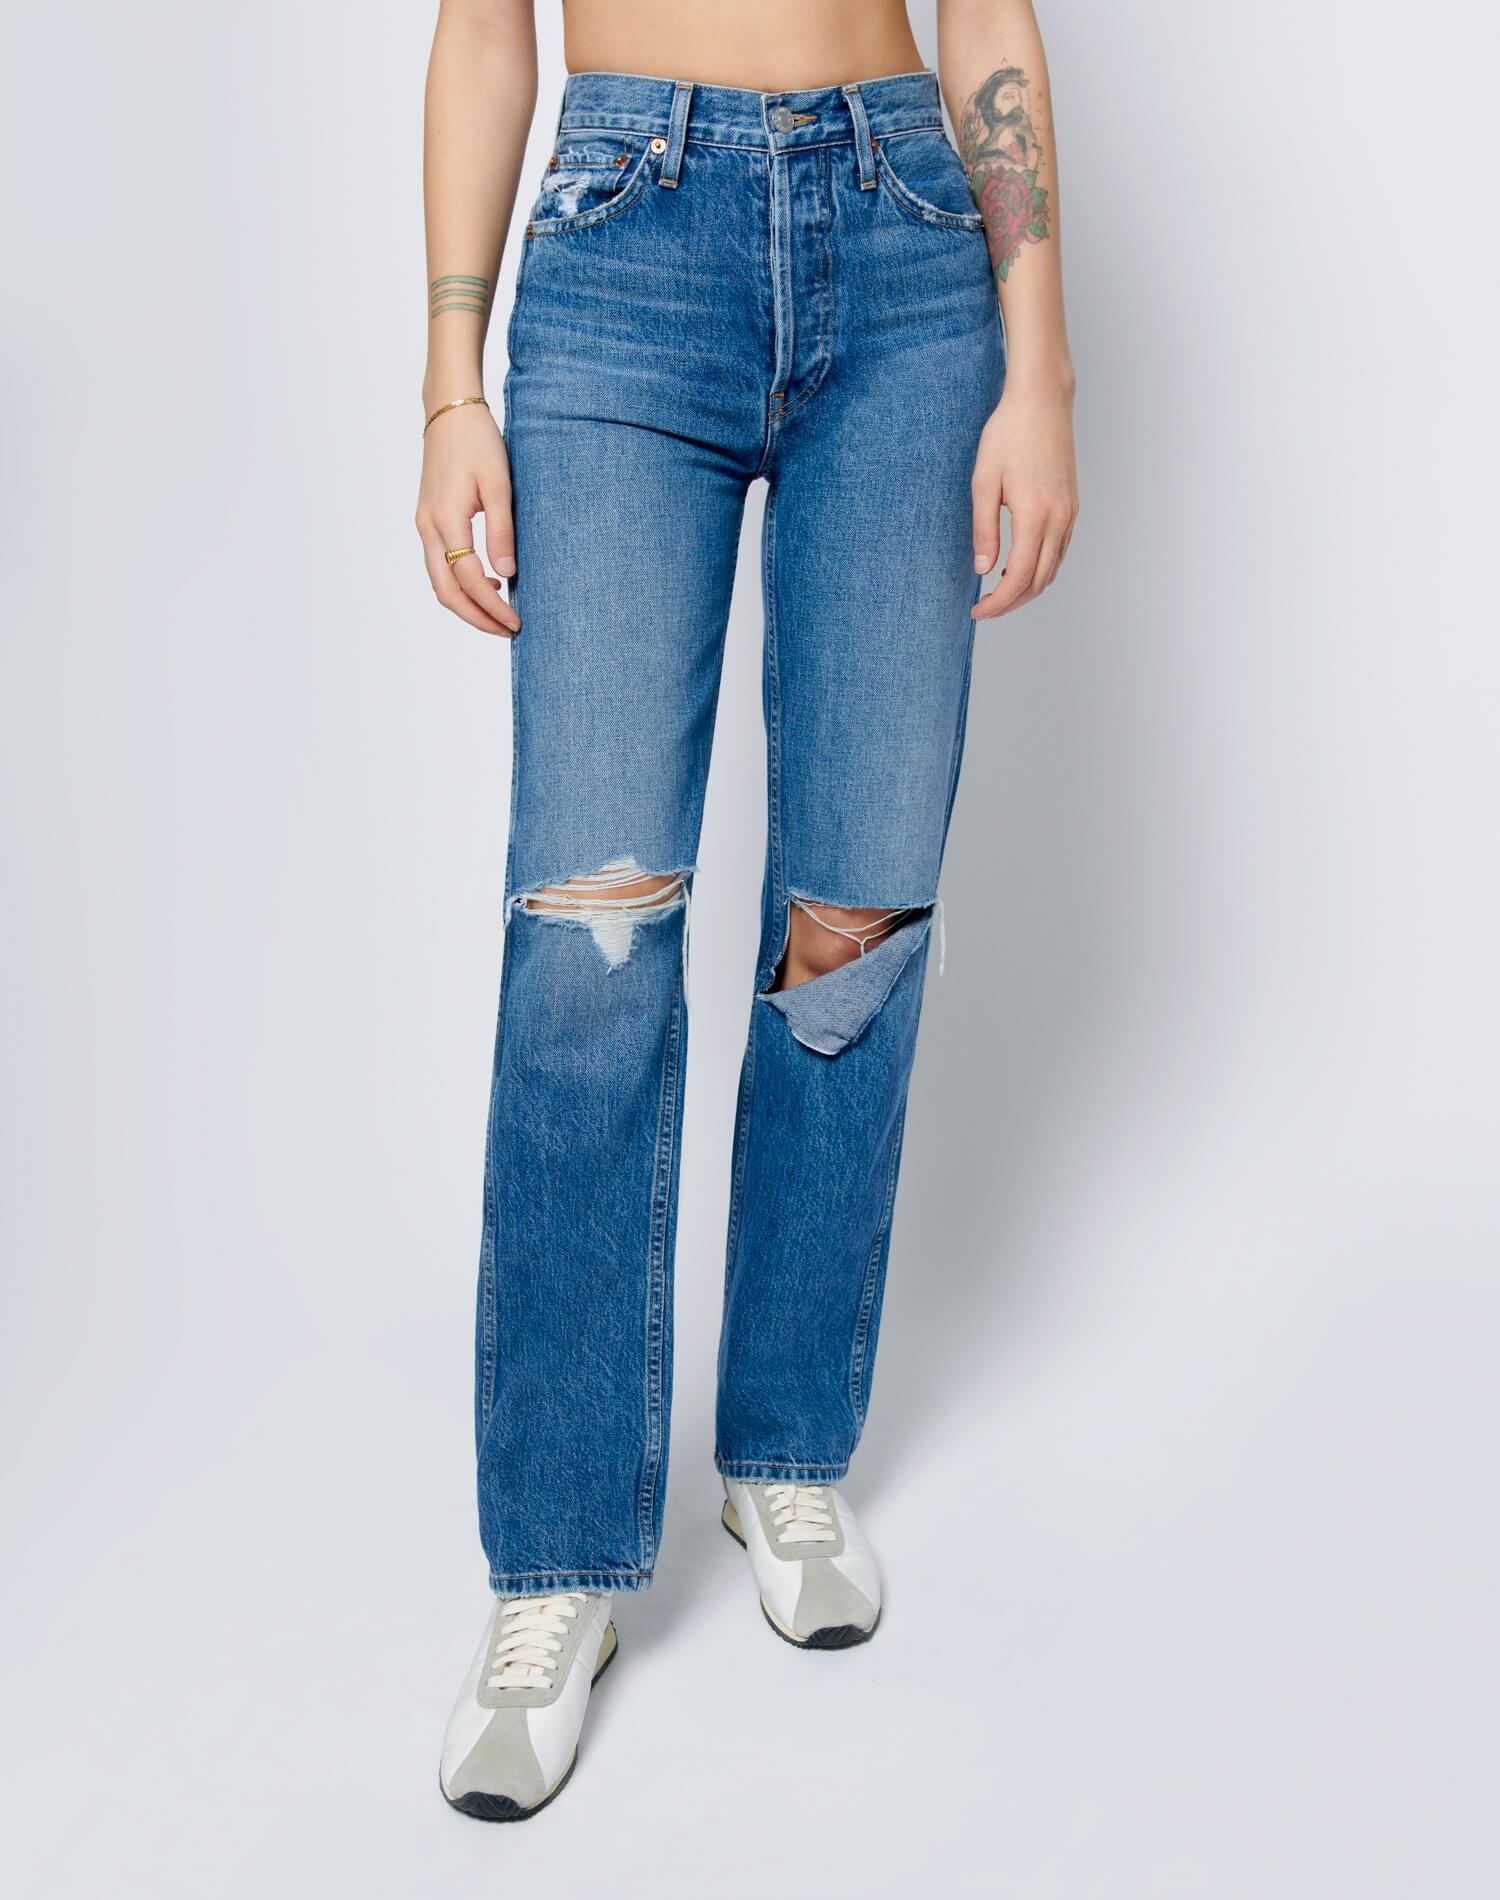 High Rise Loose - Washed Indigo with Rips